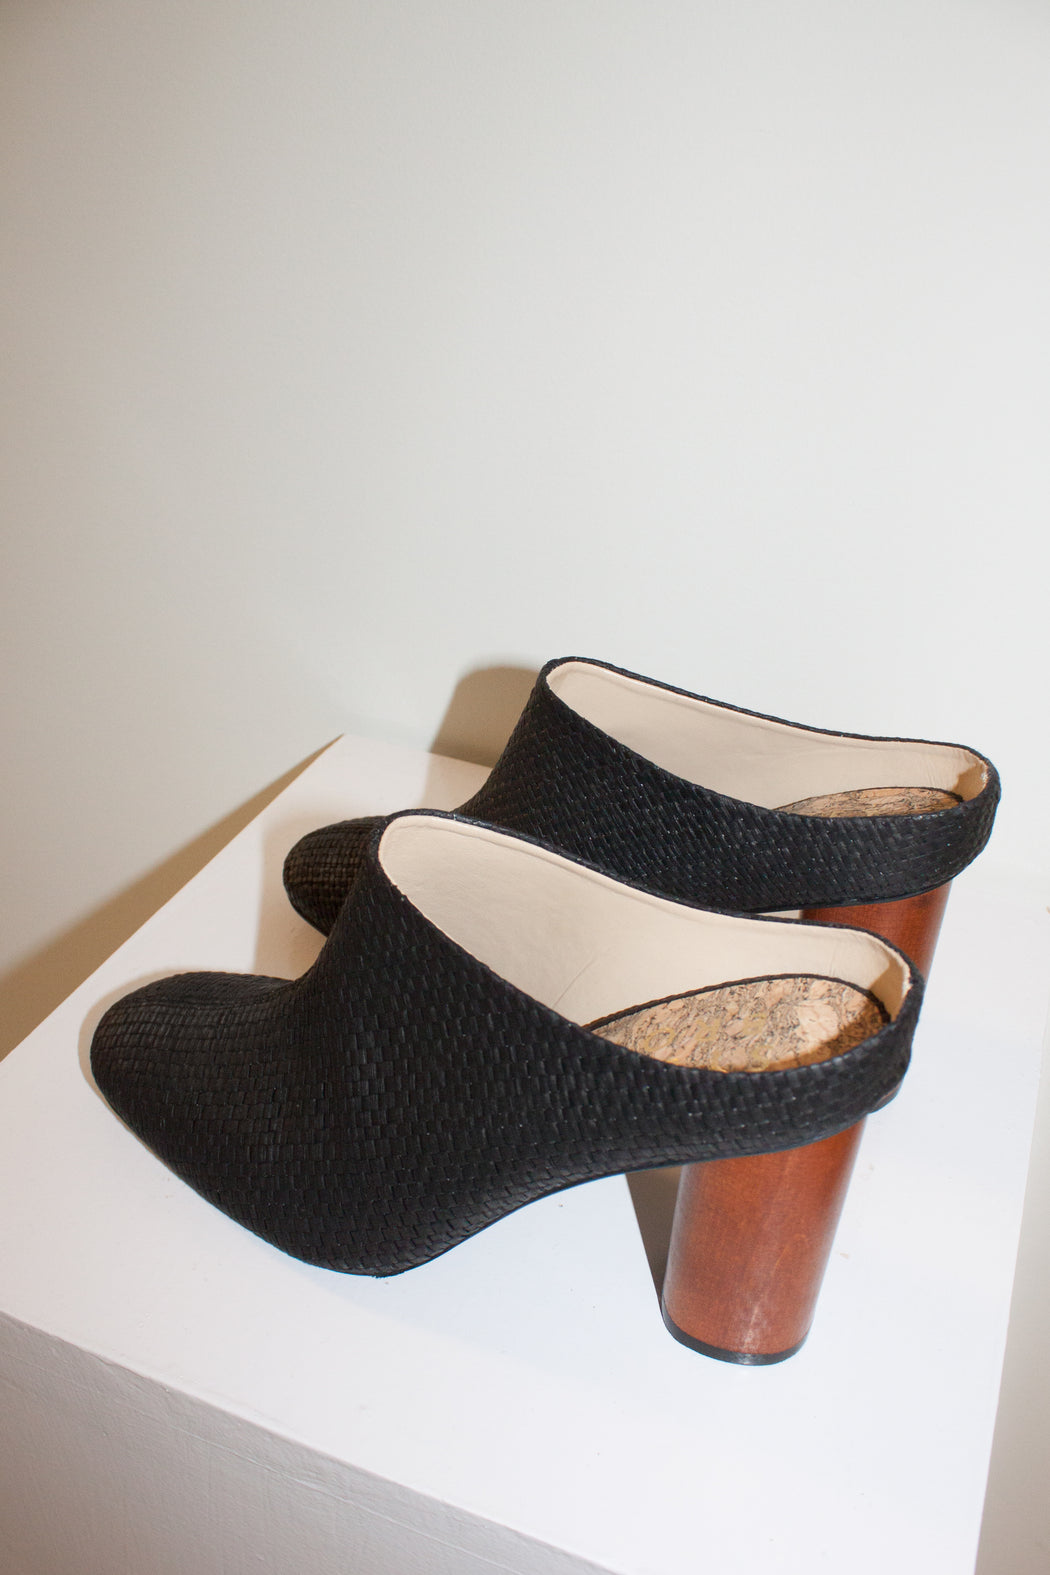 Sydney Brown Vegan Footwear | High Mule | Black Raffia | Hazel & Rose